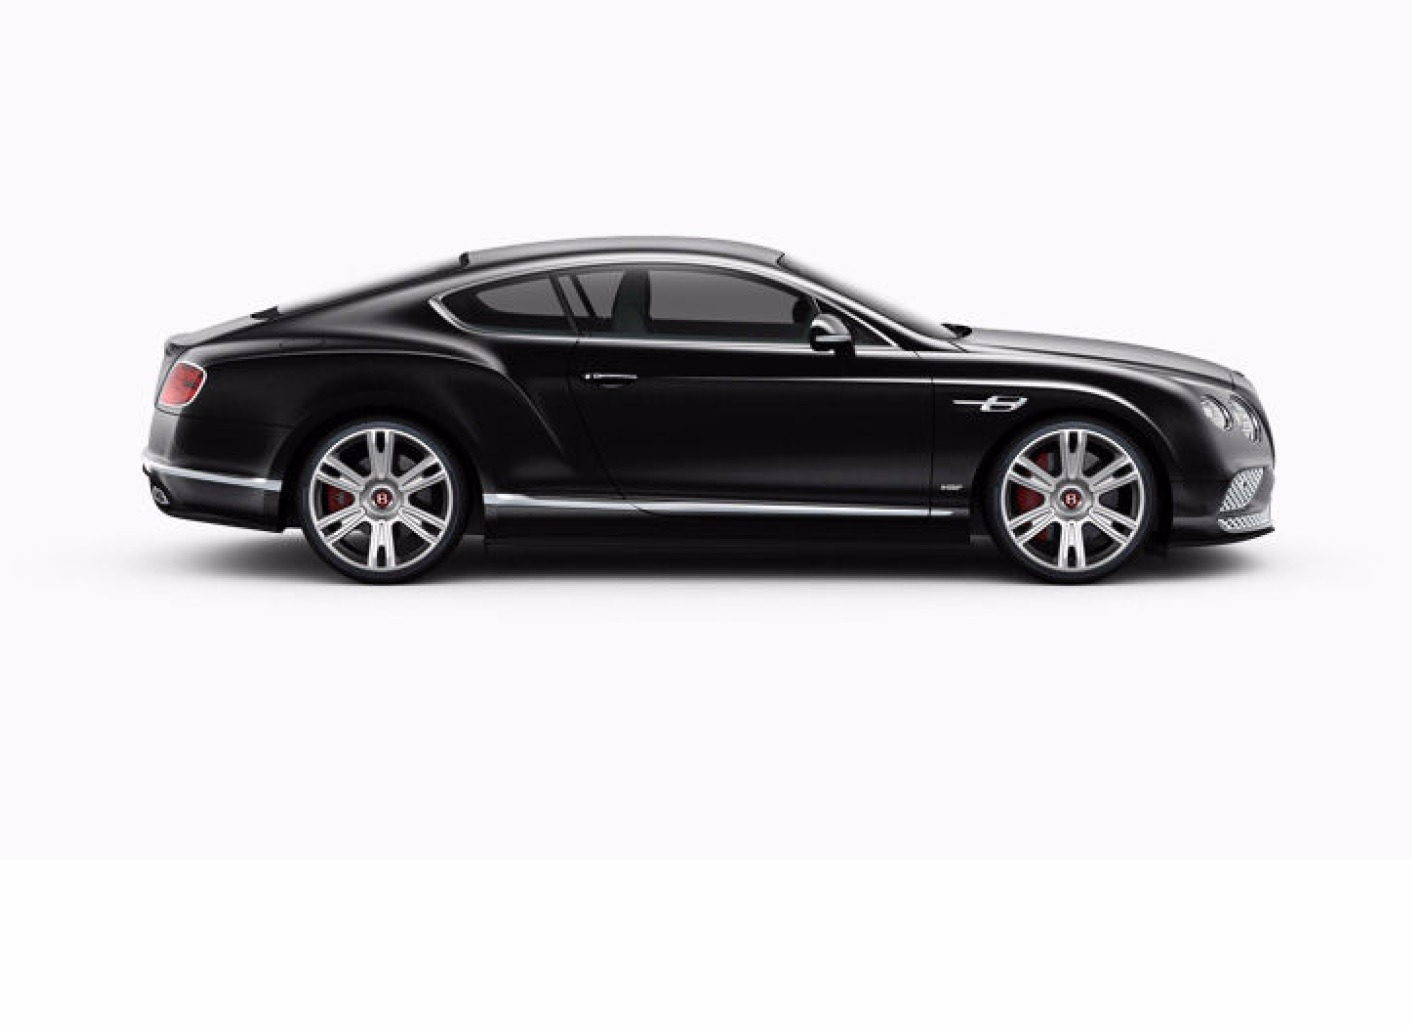 2017 Bentley Continental Gt V8s Stock 7ngt For Sale Near